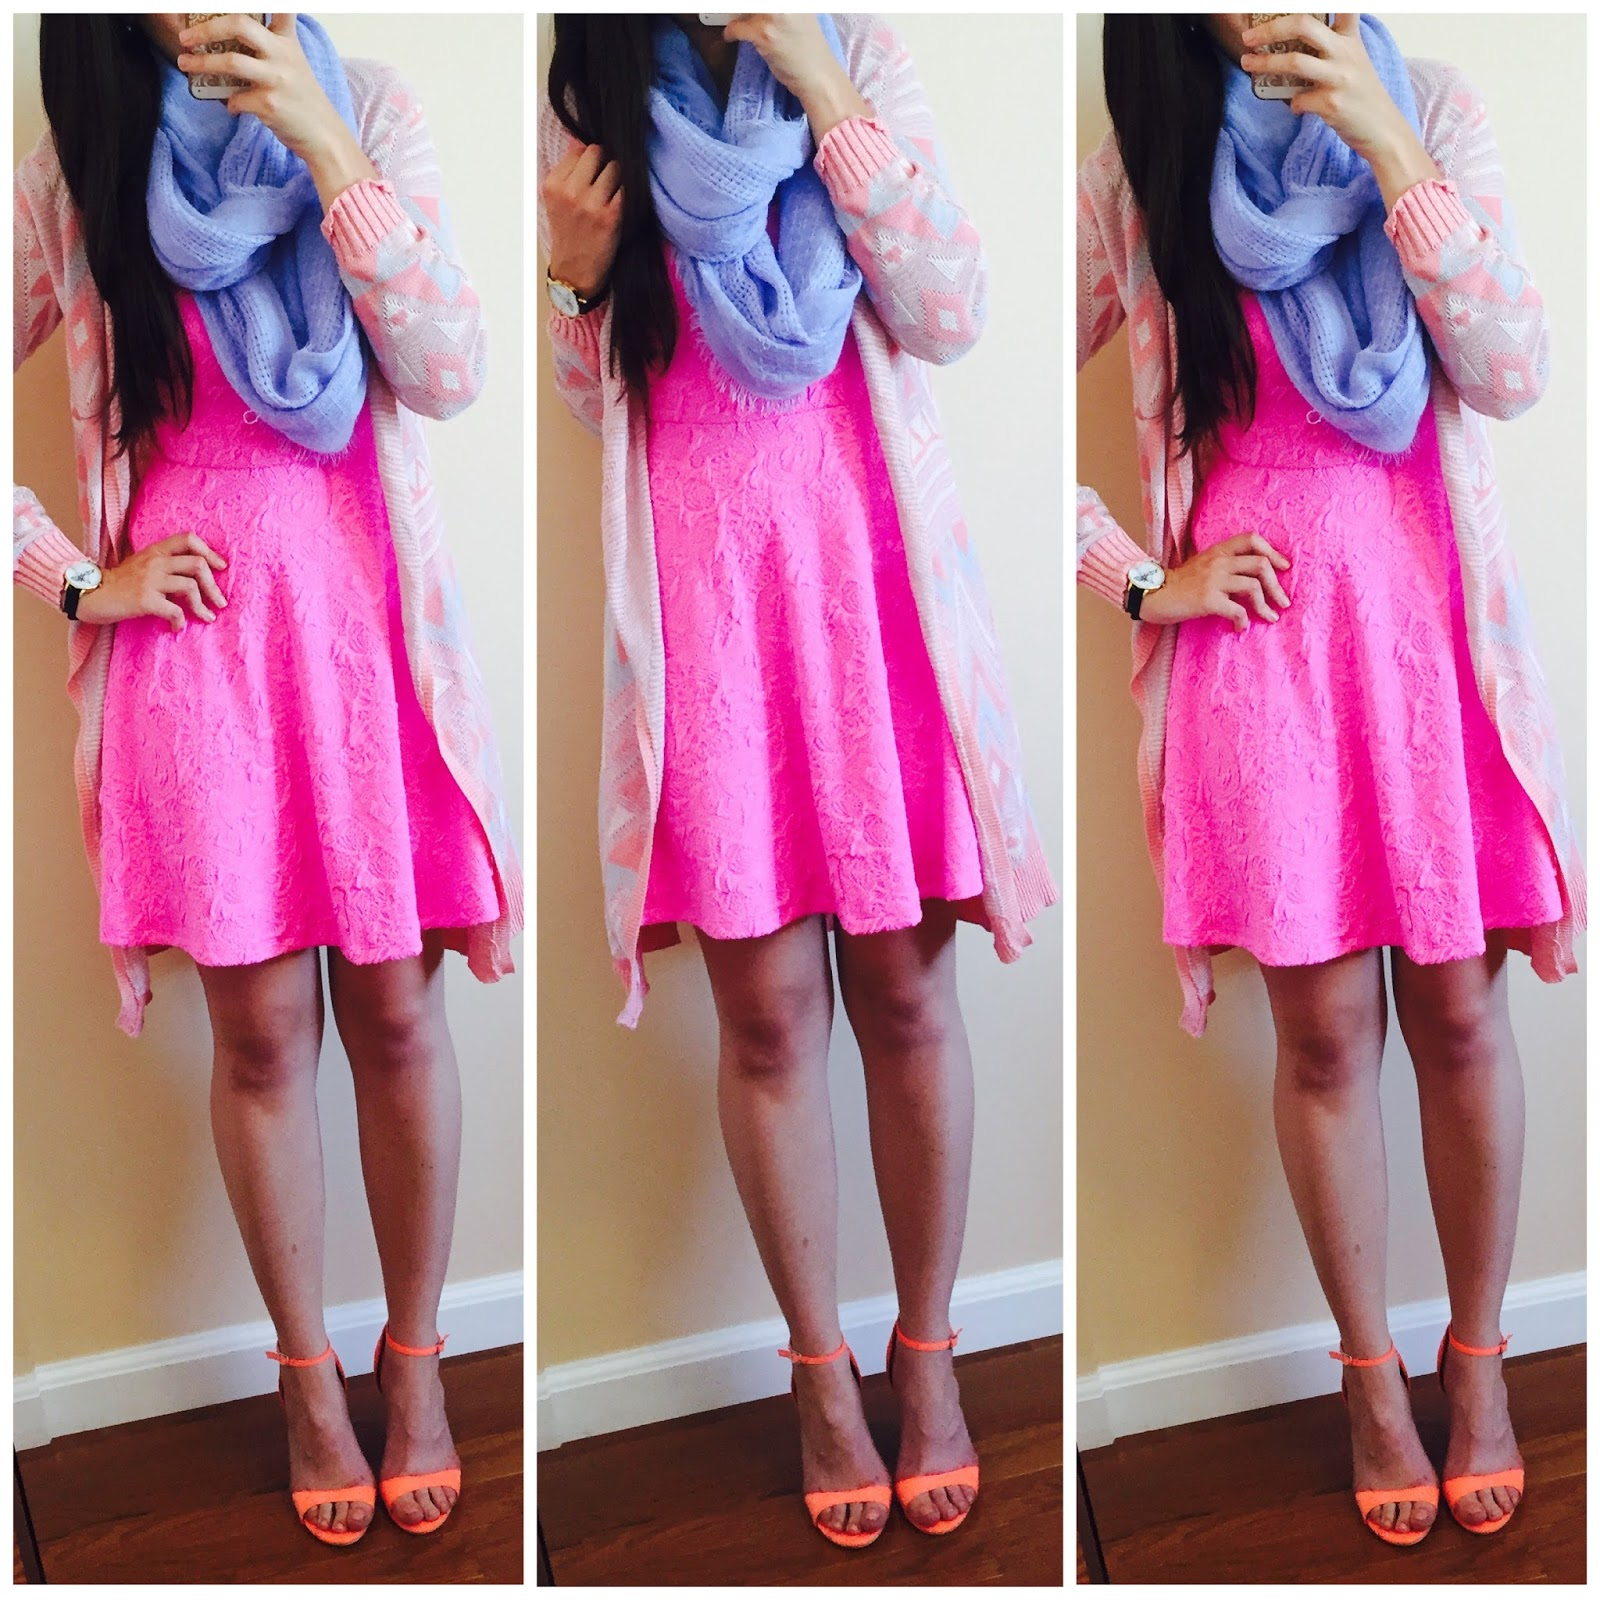 20 ways to style a pink dress, pink blush, pink dress with a sweater over it, knit sweater, brown over the knee boots, amiclubwear, fall outfit, how to style a dress for fall with boots,  two toned over the knee boots, pink knit sweater over a pink dress, how to style a knit sweater, fall to winter outfit, winter outfit, ankle booties, pinkblush draped cardigan, striped cardigan, ankle booties, grey cardigan, beige over the knee boots, white scarf, how to make a summer dress into a fall outfit, aztec cardigan, pastel colors for fall,